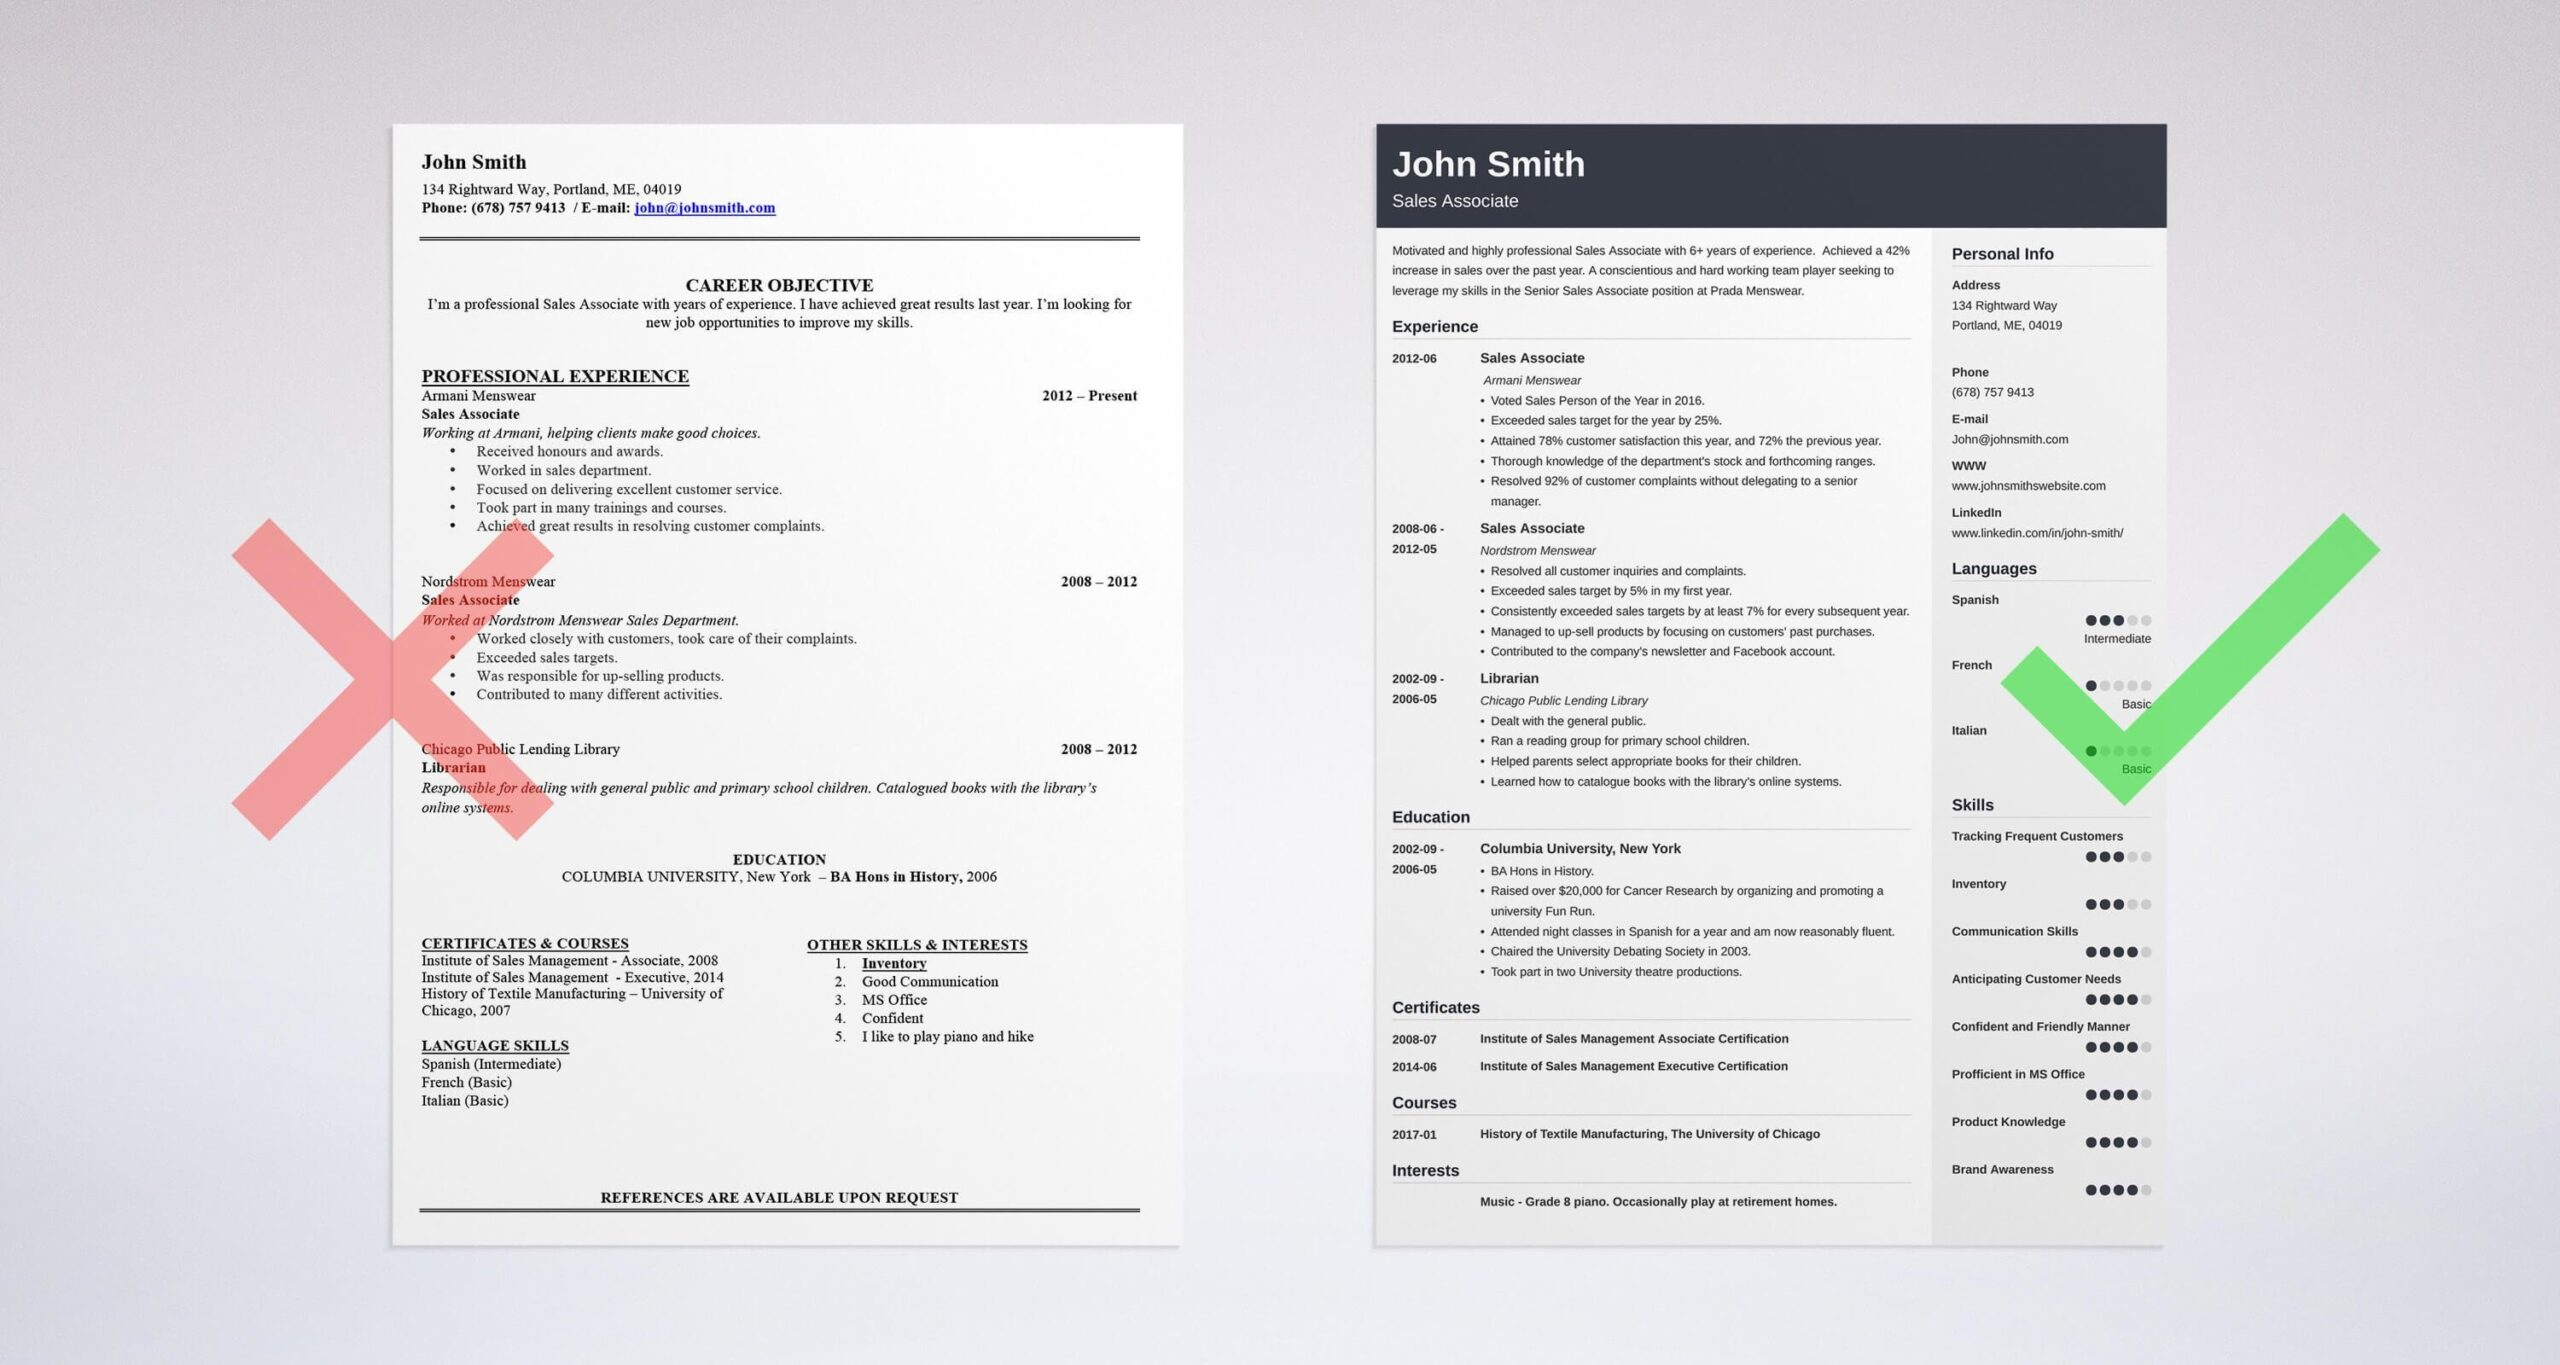 professional resume summary examples statements self for sample on template cubic teacher Resume Self Summary For Resume Sample